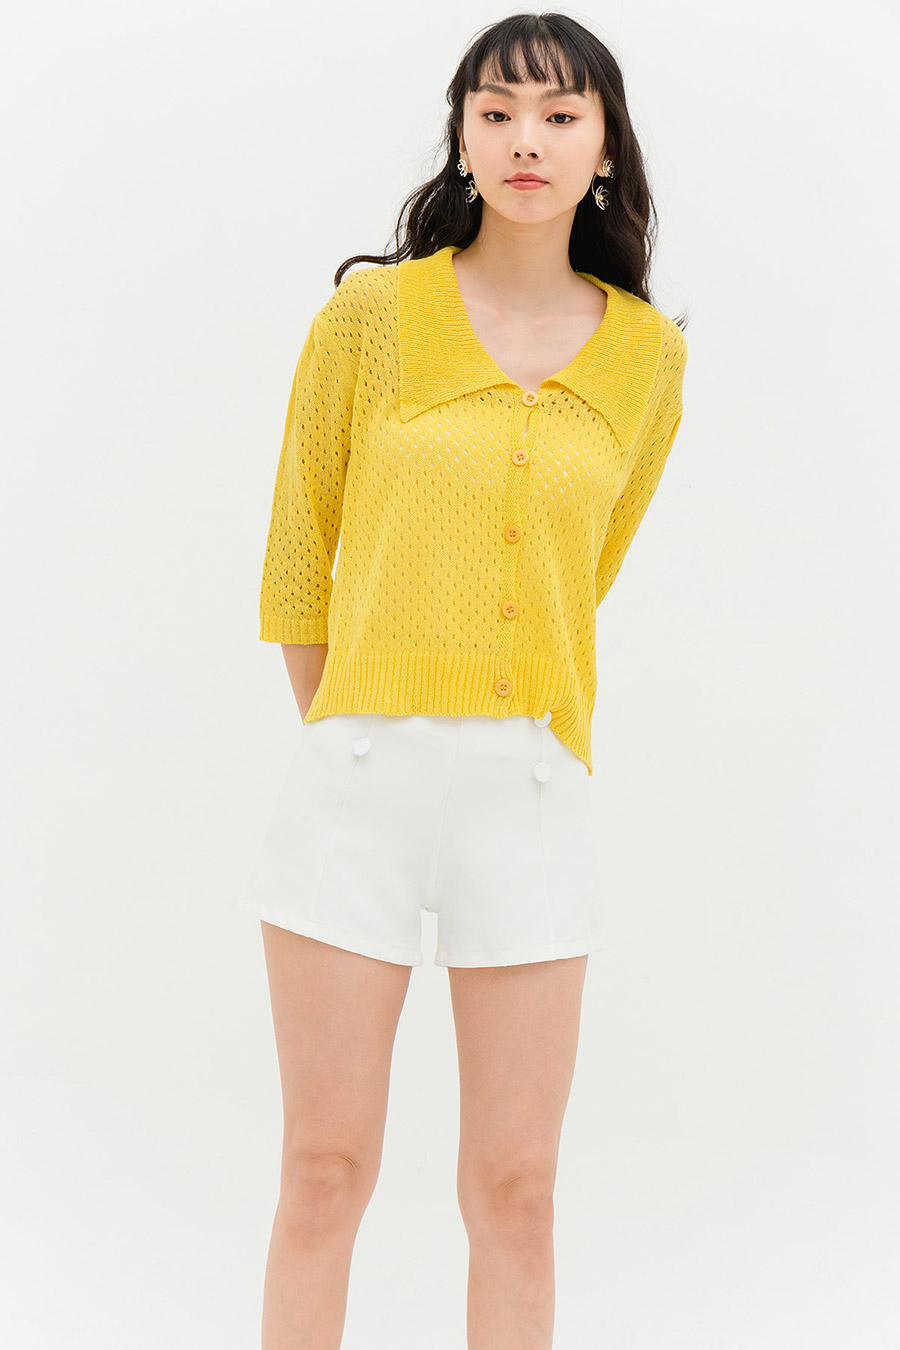 *SALE* TAMBO TOP - BUTTER